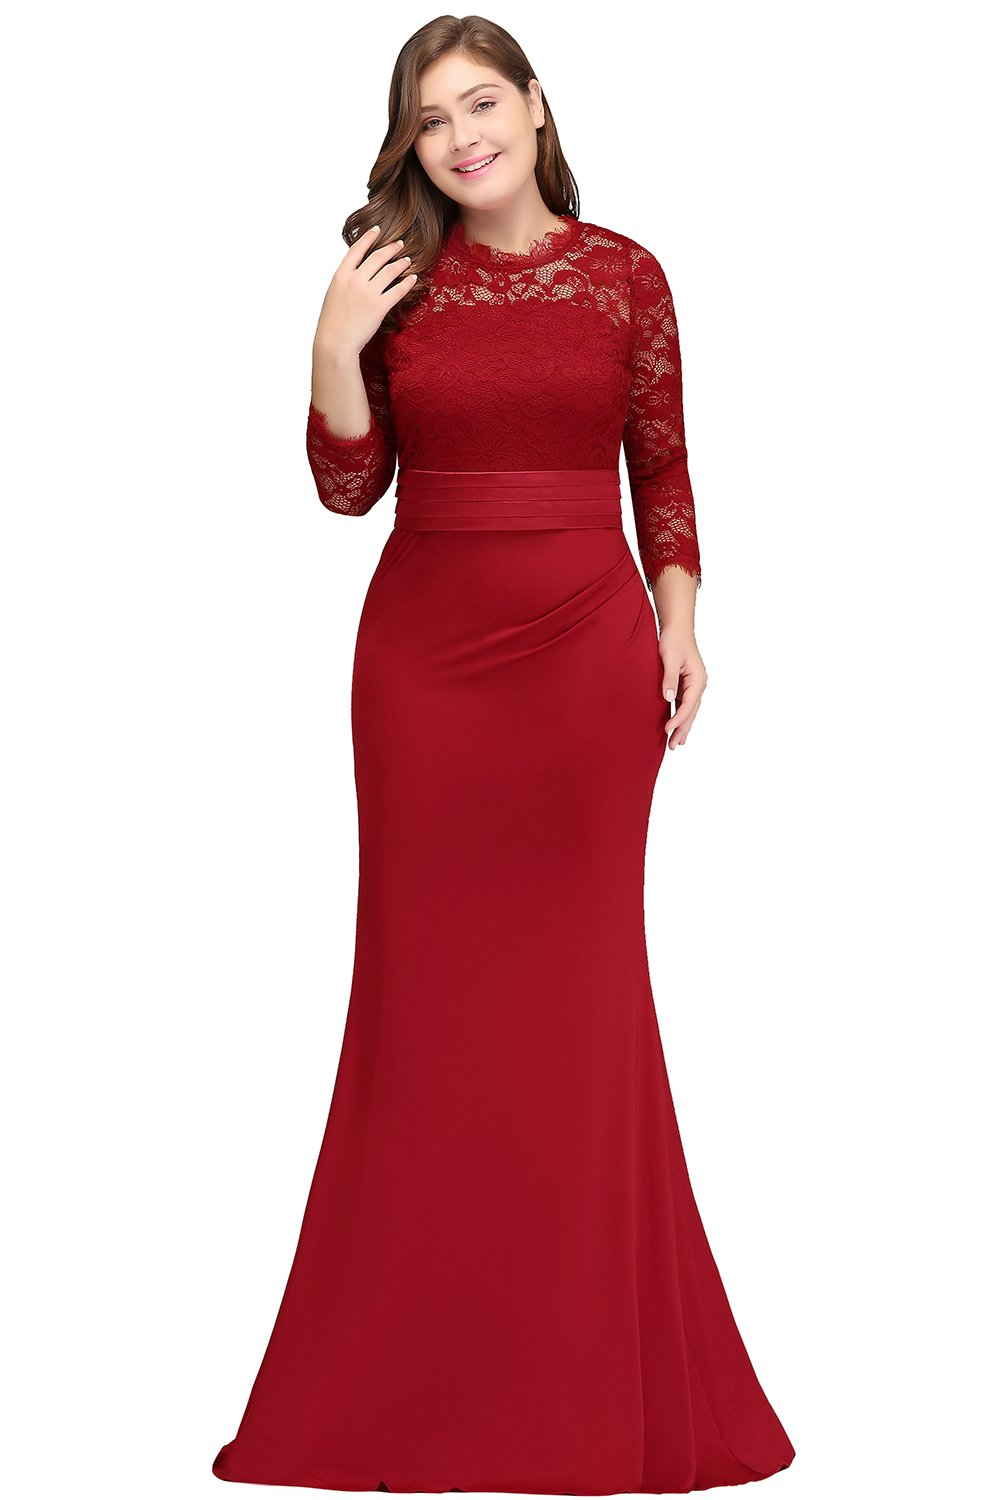 81641e9c0945 Galleon - Babyonlinedress Women Plus Size Mermaid Special Occasion Dresses  Red 20W